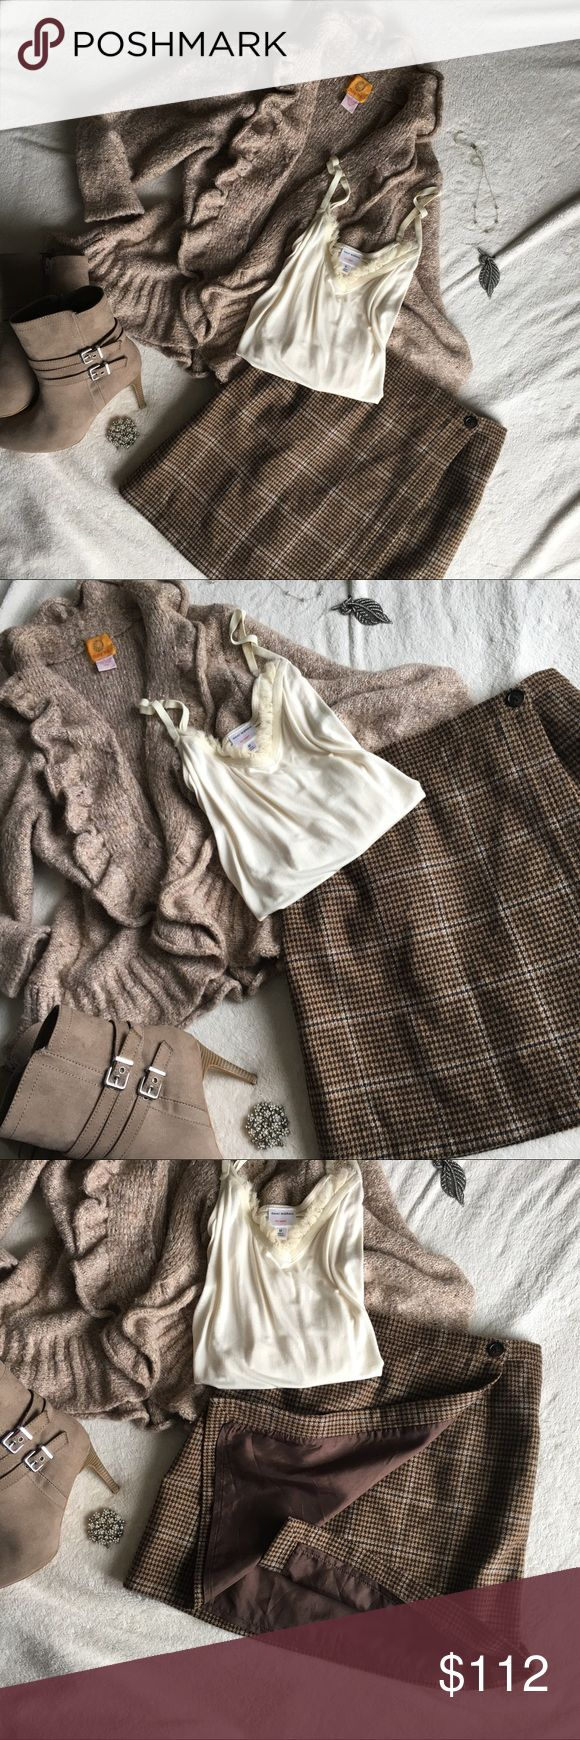 NWOT| J. Crew Houndstooth Wool Wrap Skirt NWOT| J. Crew Fully Lined Wool Wrap Skirt |This on-trend Wrap Skirt has J. Crew's classic sense of style in every thread. Dark mocha and creamy almond coloured Houndstooth mens-y pattern is counterbalanced with a chic and flirty above-the-knee hem. Pairs perfectly with your favourite pair of ankle boots or flats. To add an extra little touch of feminine charm, pair with a ruffled accent piece such as the Ruby Rd. Open Front Cardigan shown. It's also…